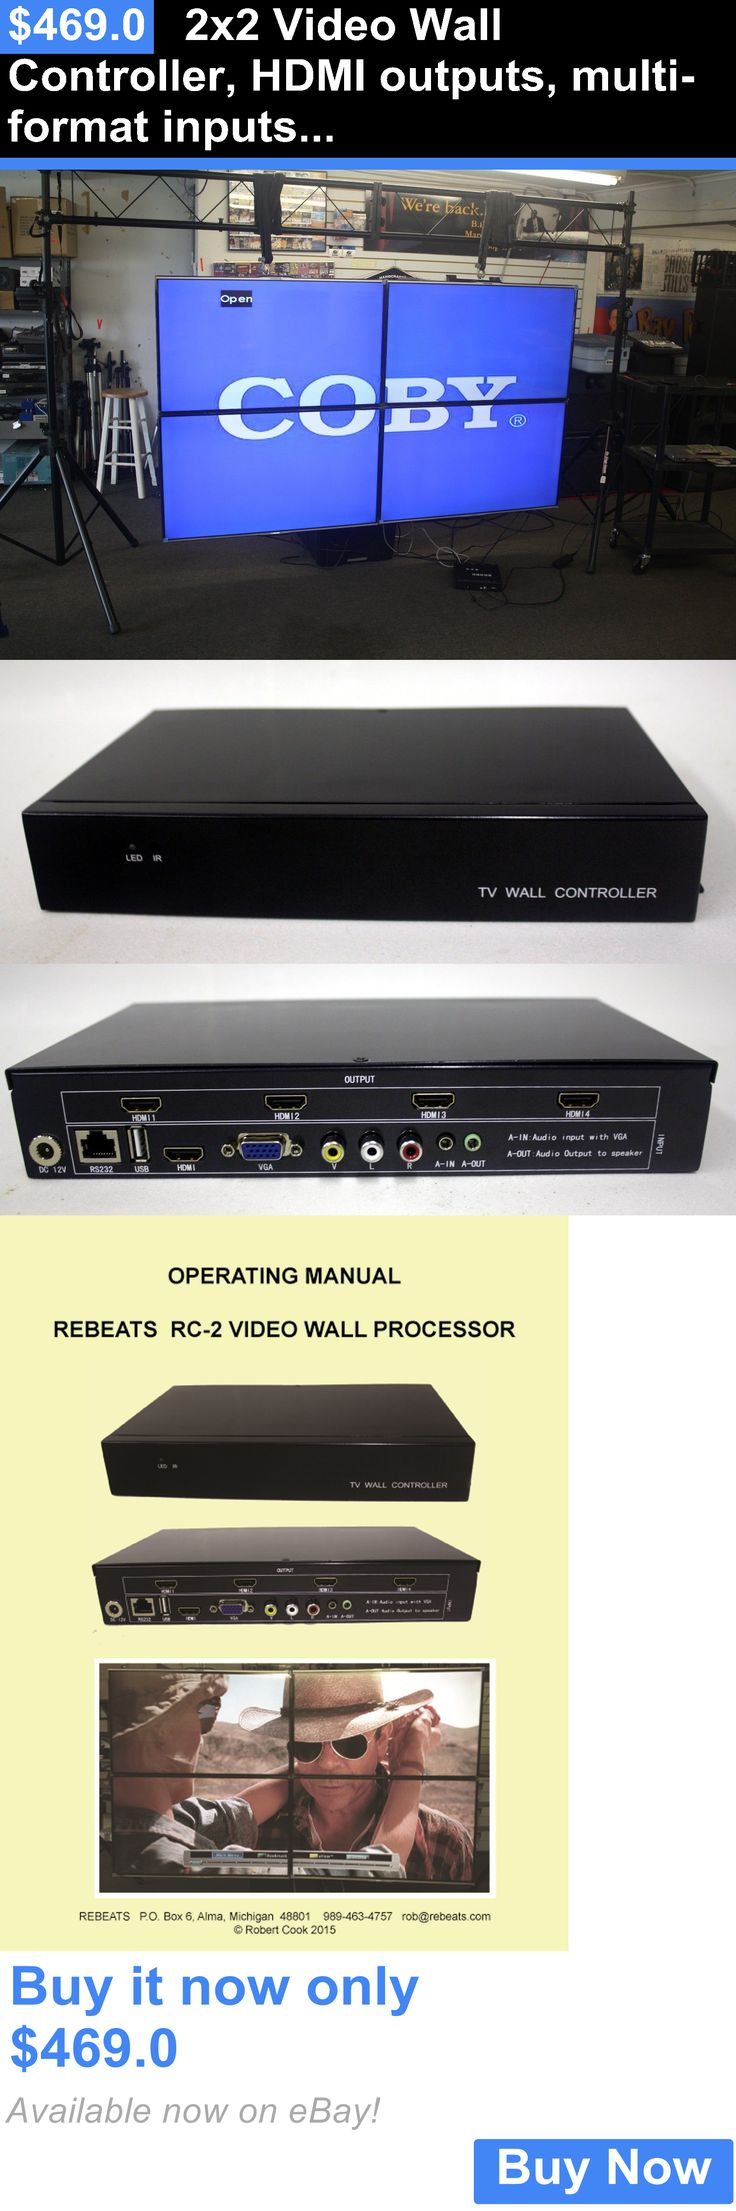 Other TV Video and Audio Parts: 2X2 Video Wall Controller, Hdmi Outputs, Multi-Format Inputs, Free Shipping BUY IT NOW ONLY: $469.0